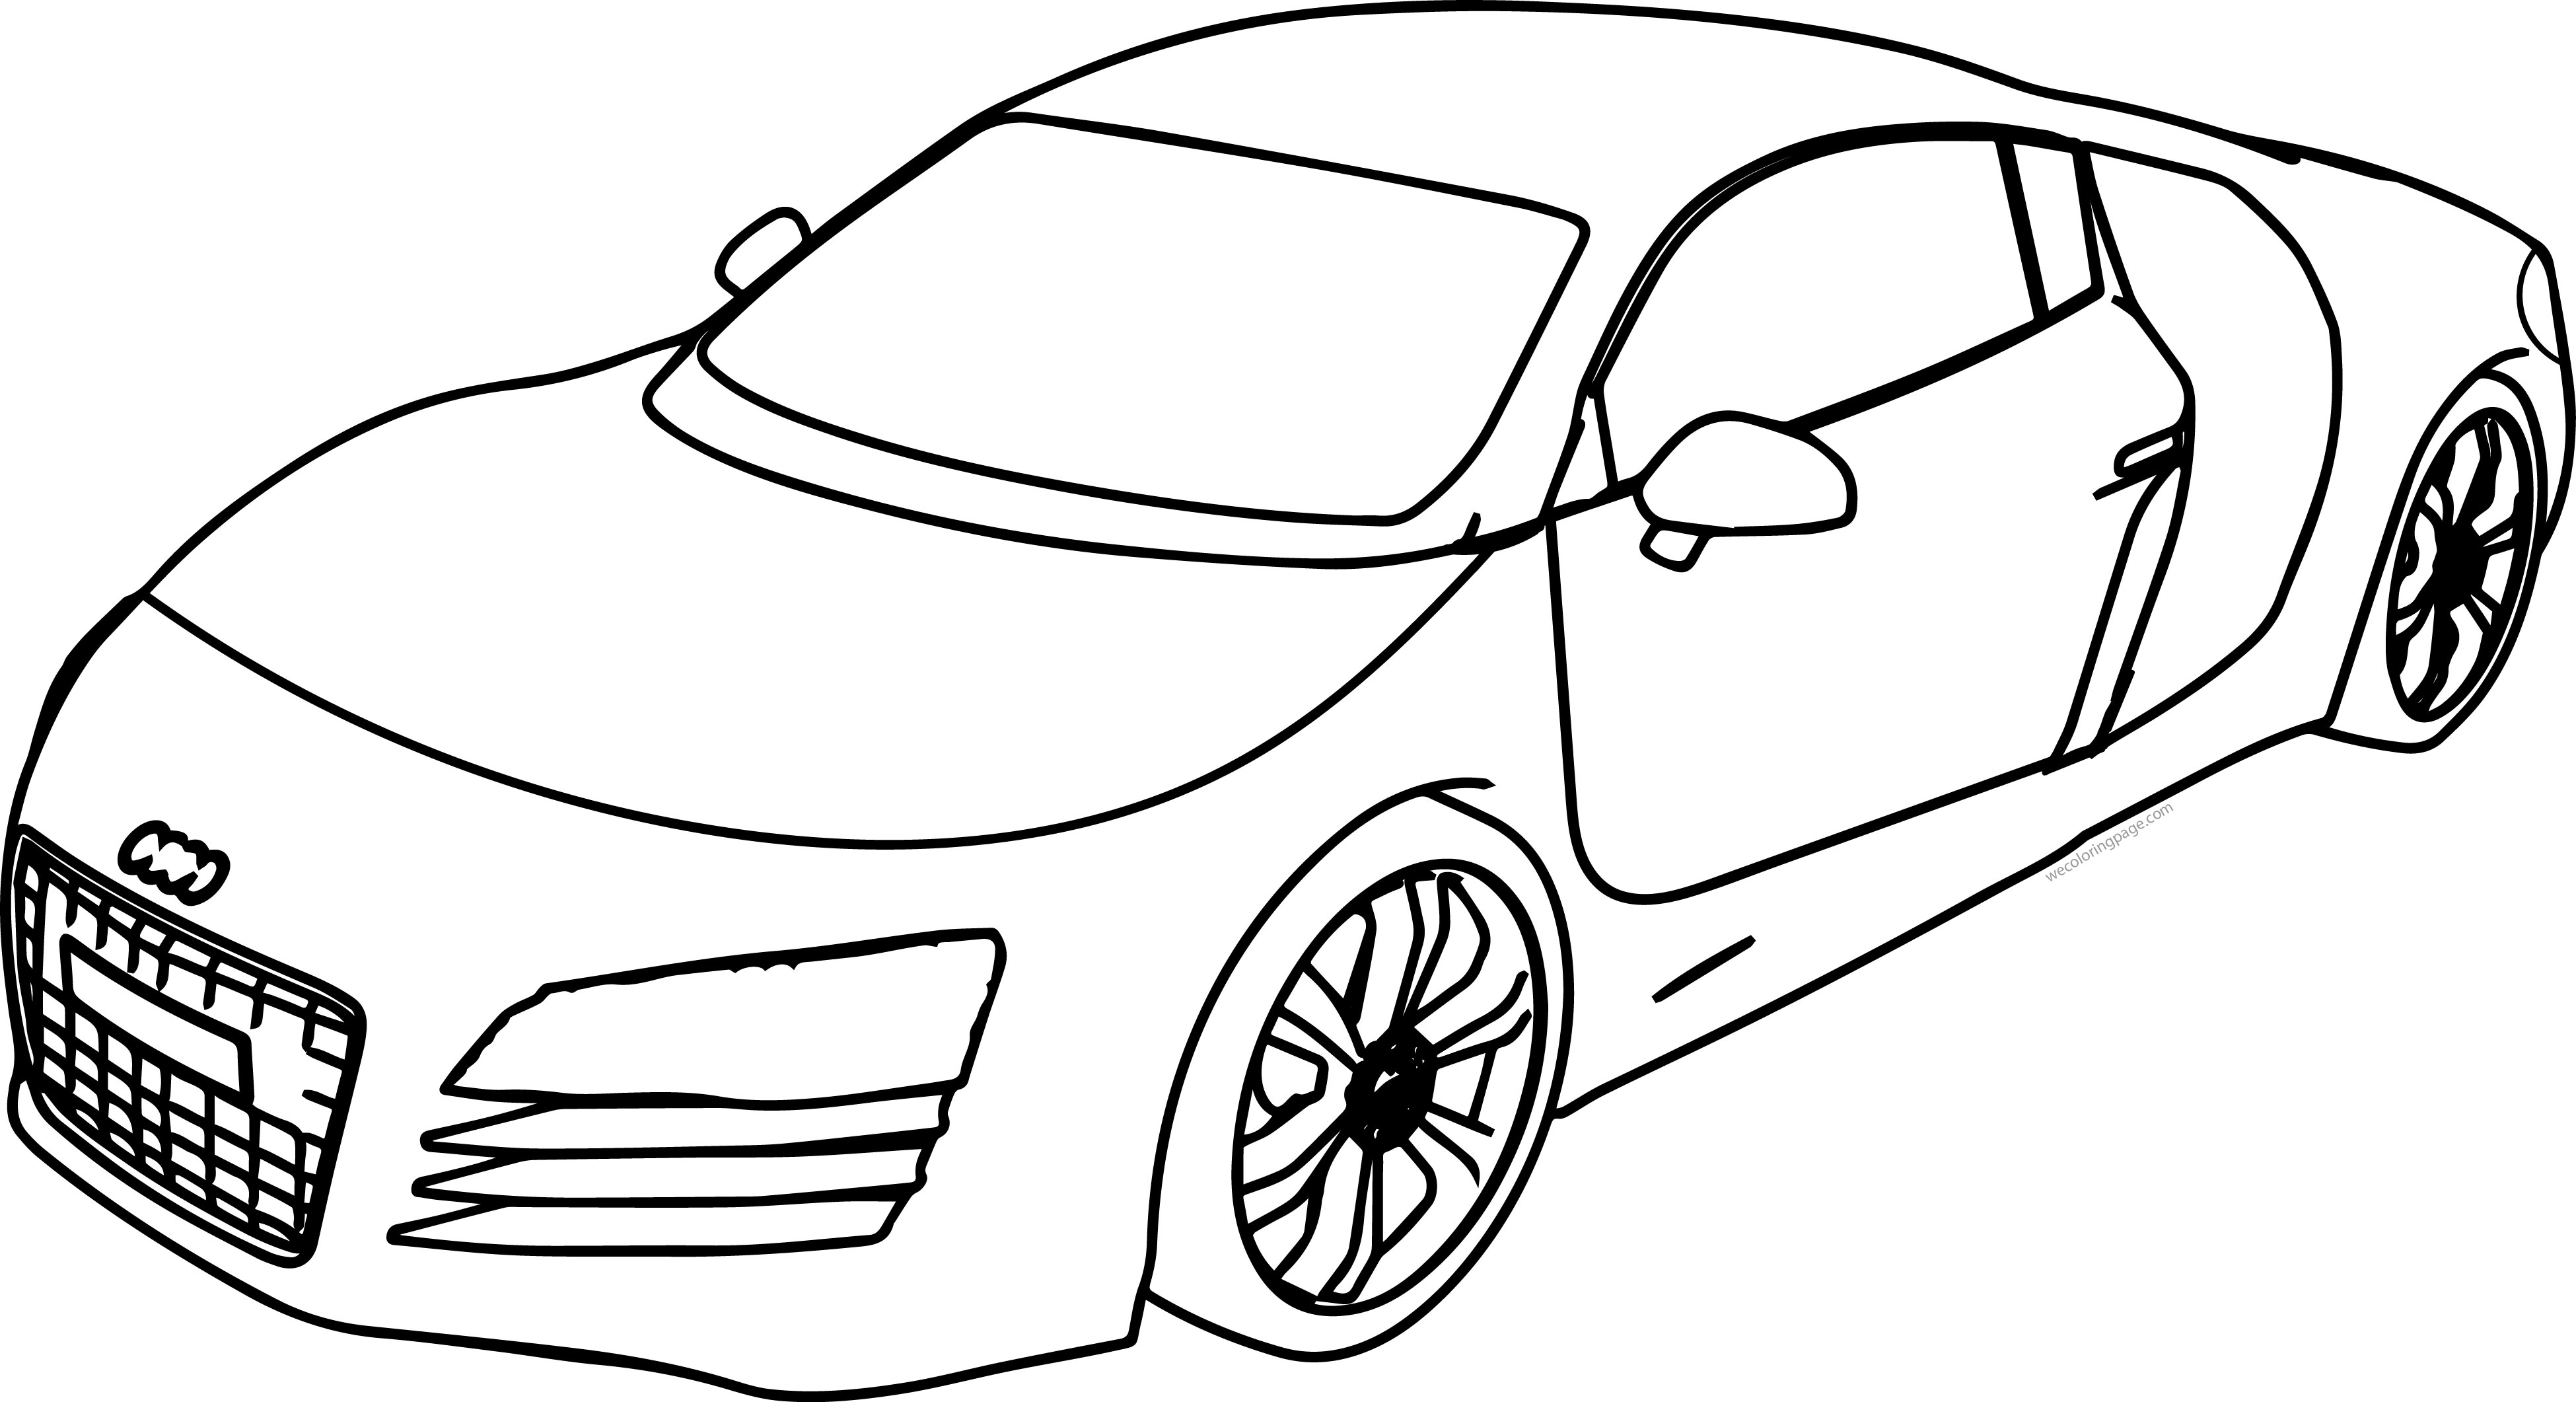 bold line coloring pages | Audi R8 Bold Line Coloring Page | Wecoloringpage.com